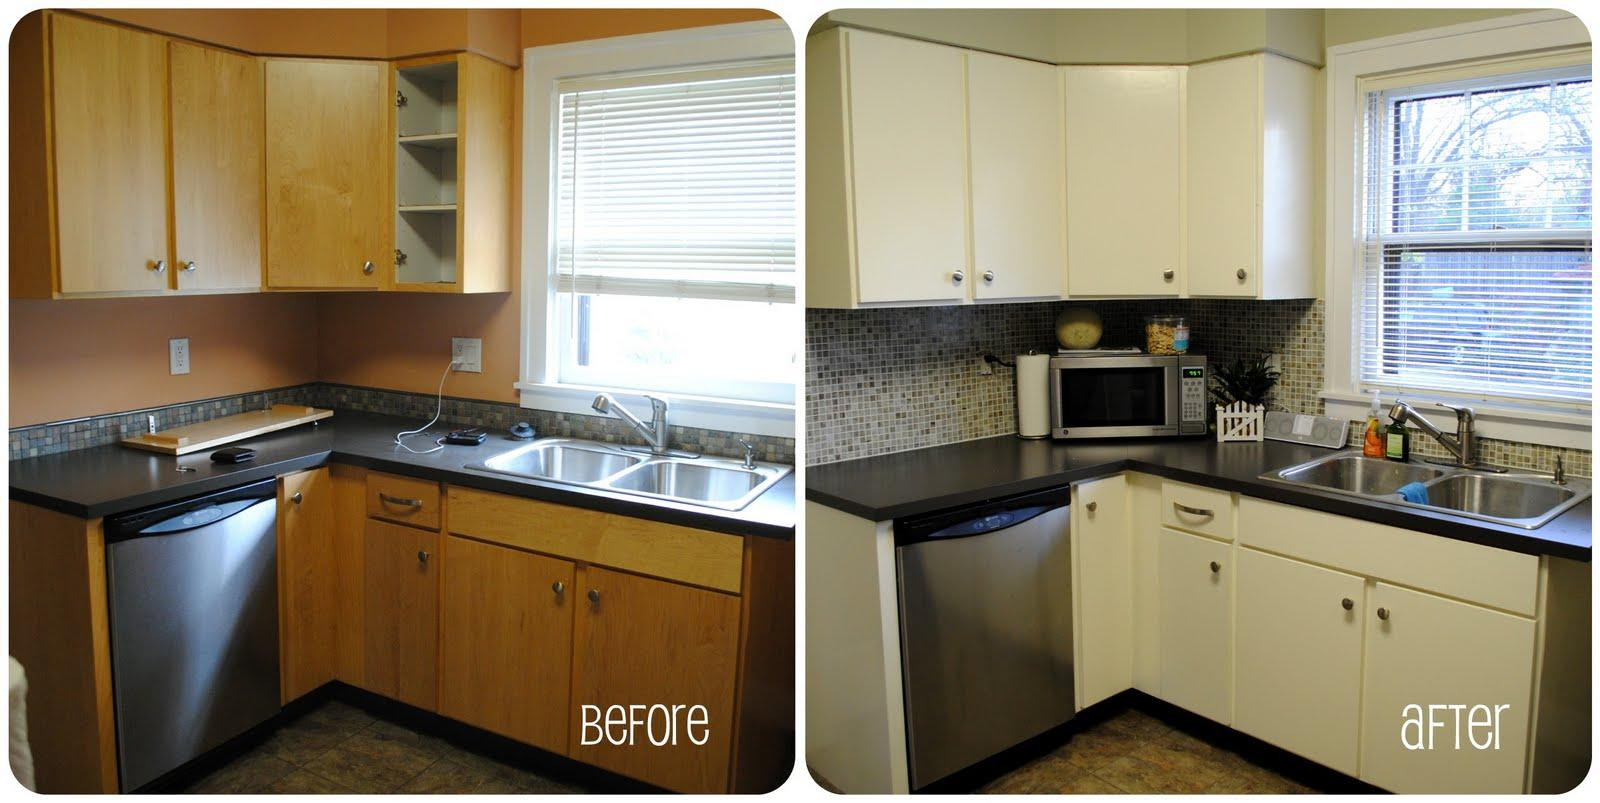 Ordinaire Cheap Kitchen Upgrades For Rental Properties